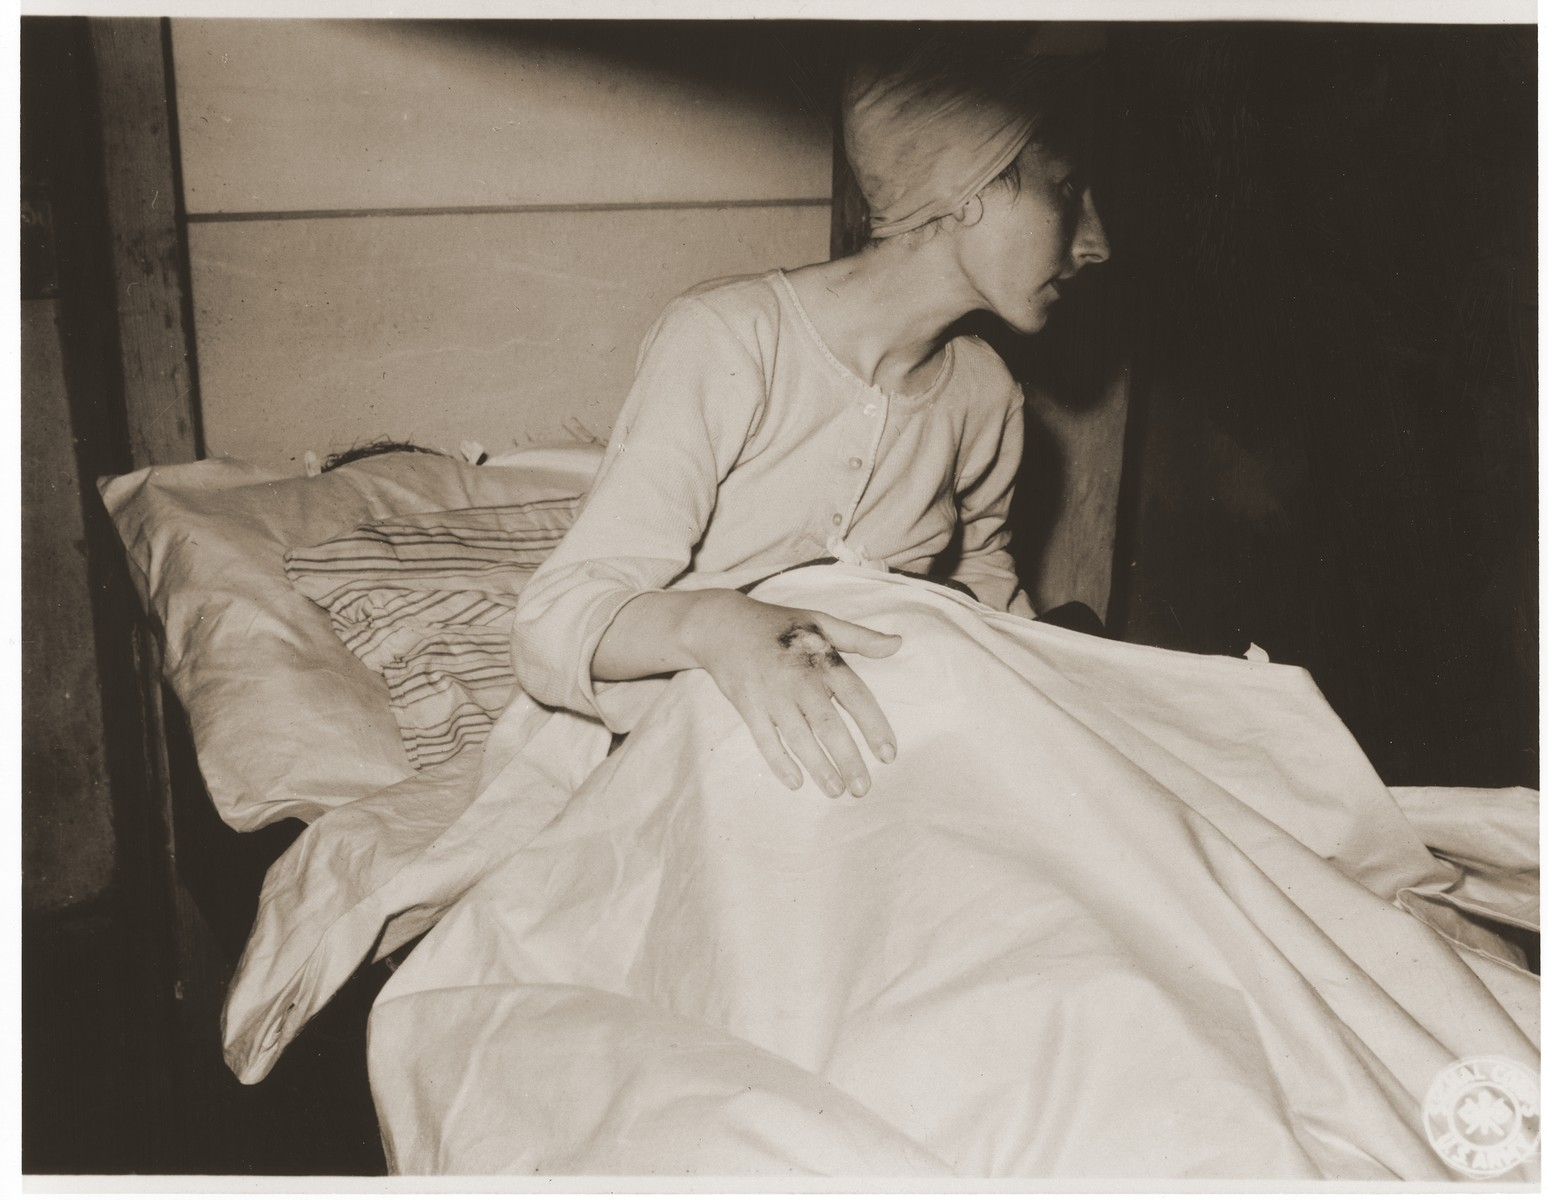 An emaciated female Jewish survivor of a death march sits up in bed at an American military field hospital in Volary, Czechoslovakia.  Pictured is Sabina (Sheva) Szeps, who eventually recovered and immigrated to Palestine.